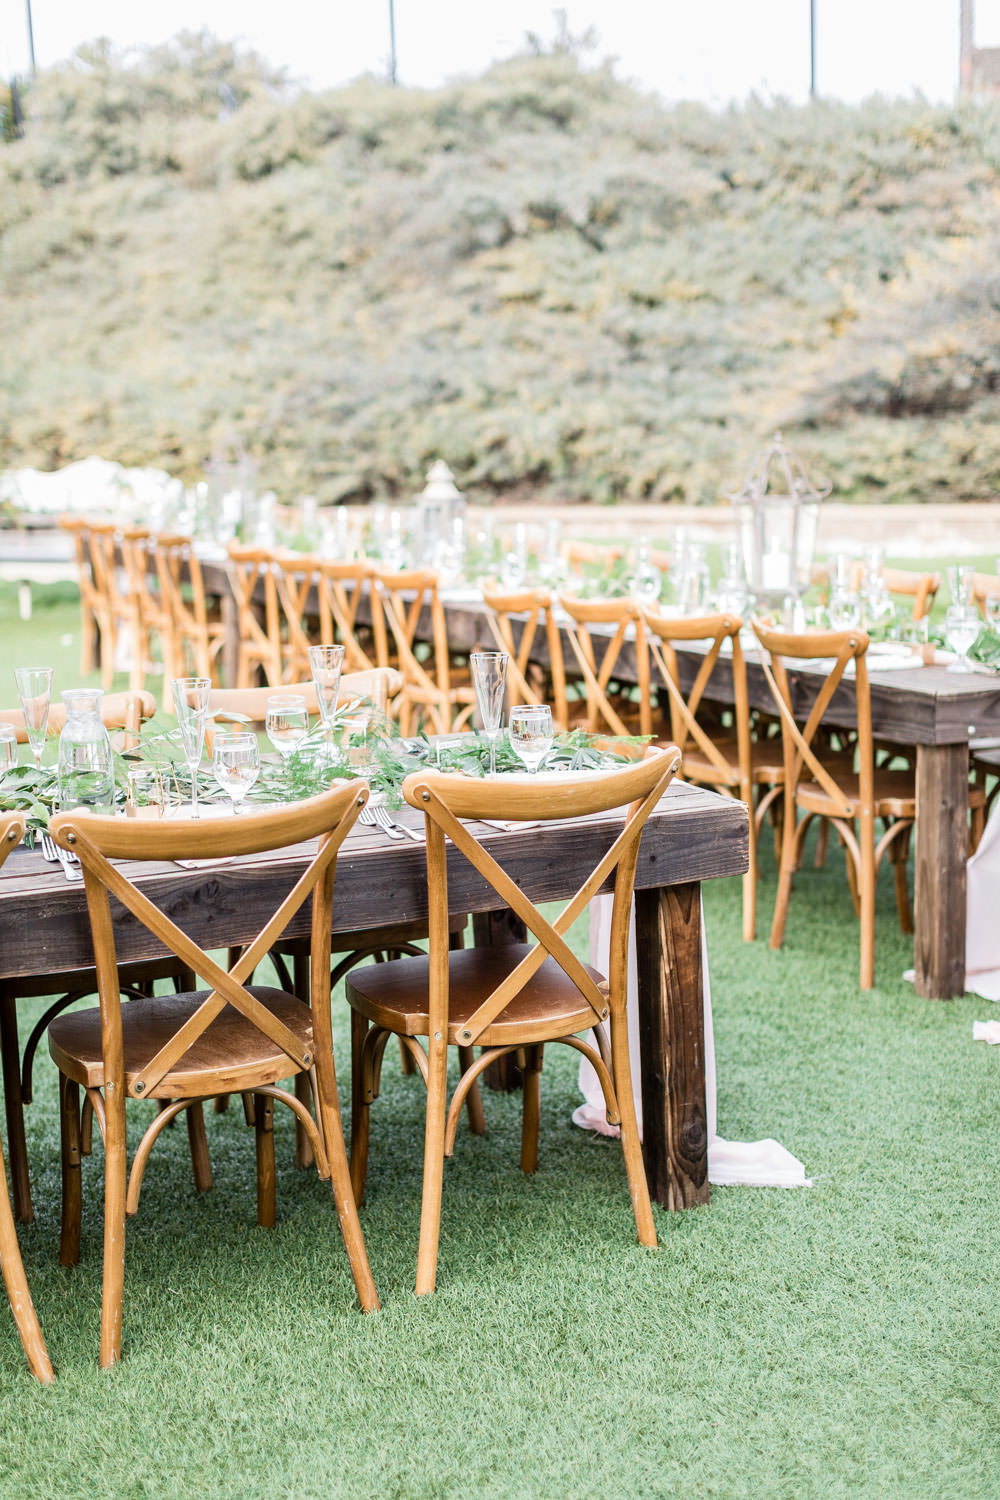 Crossback chairs at Ethereal Open Air Resort Wedding Reception outdoors with market lights, Cavin Elizabeth Photography